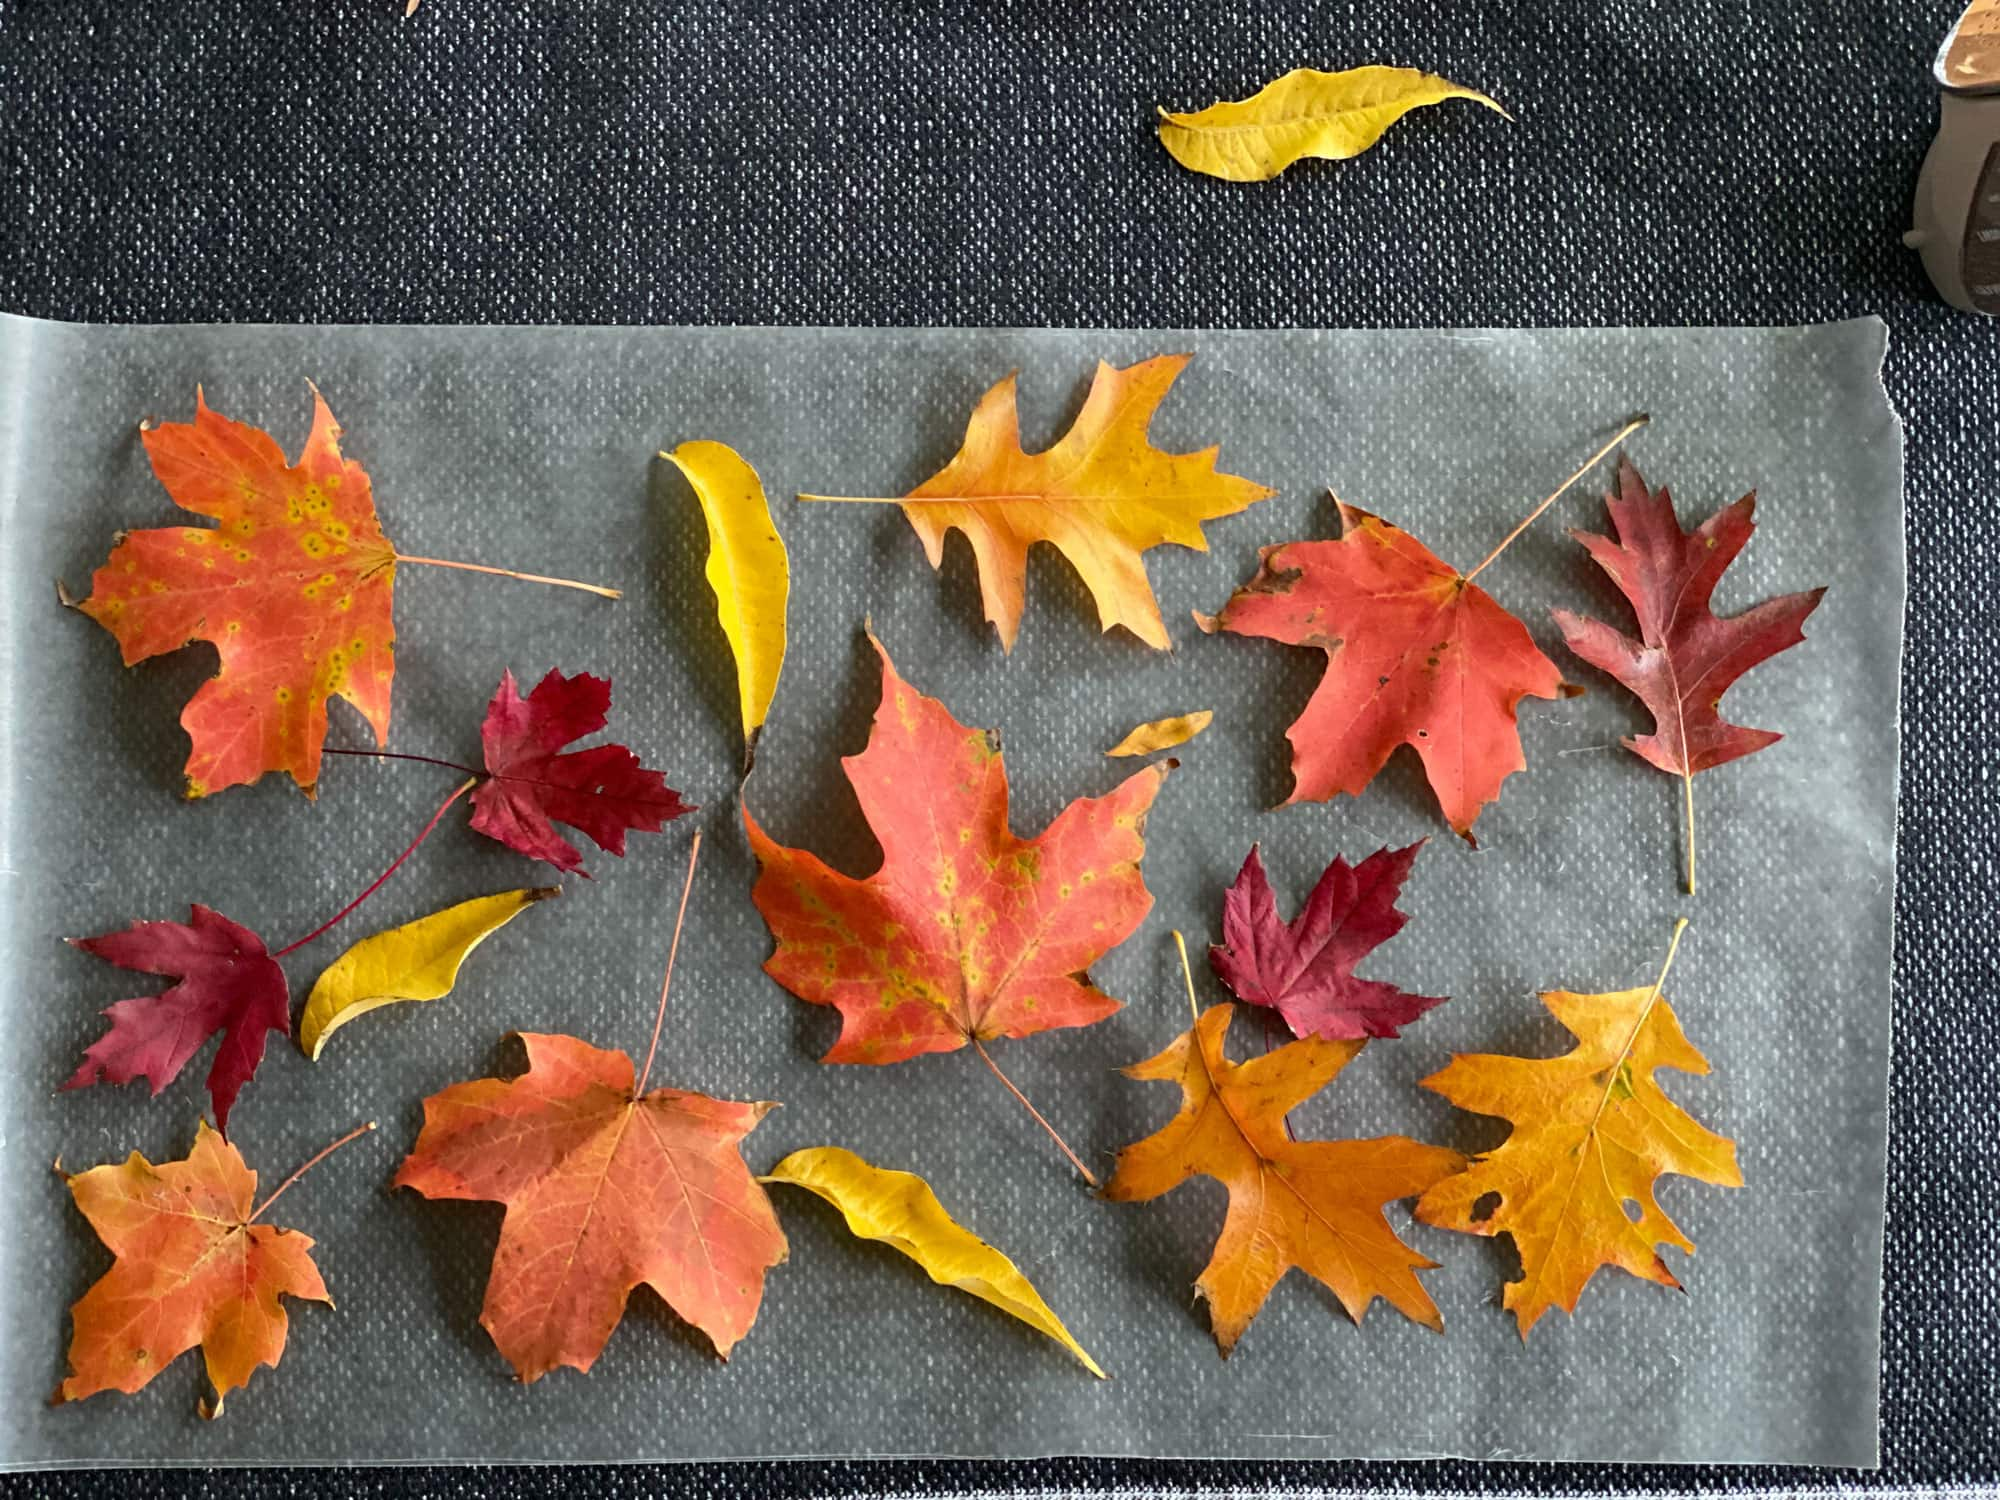 Leaves on wax paper